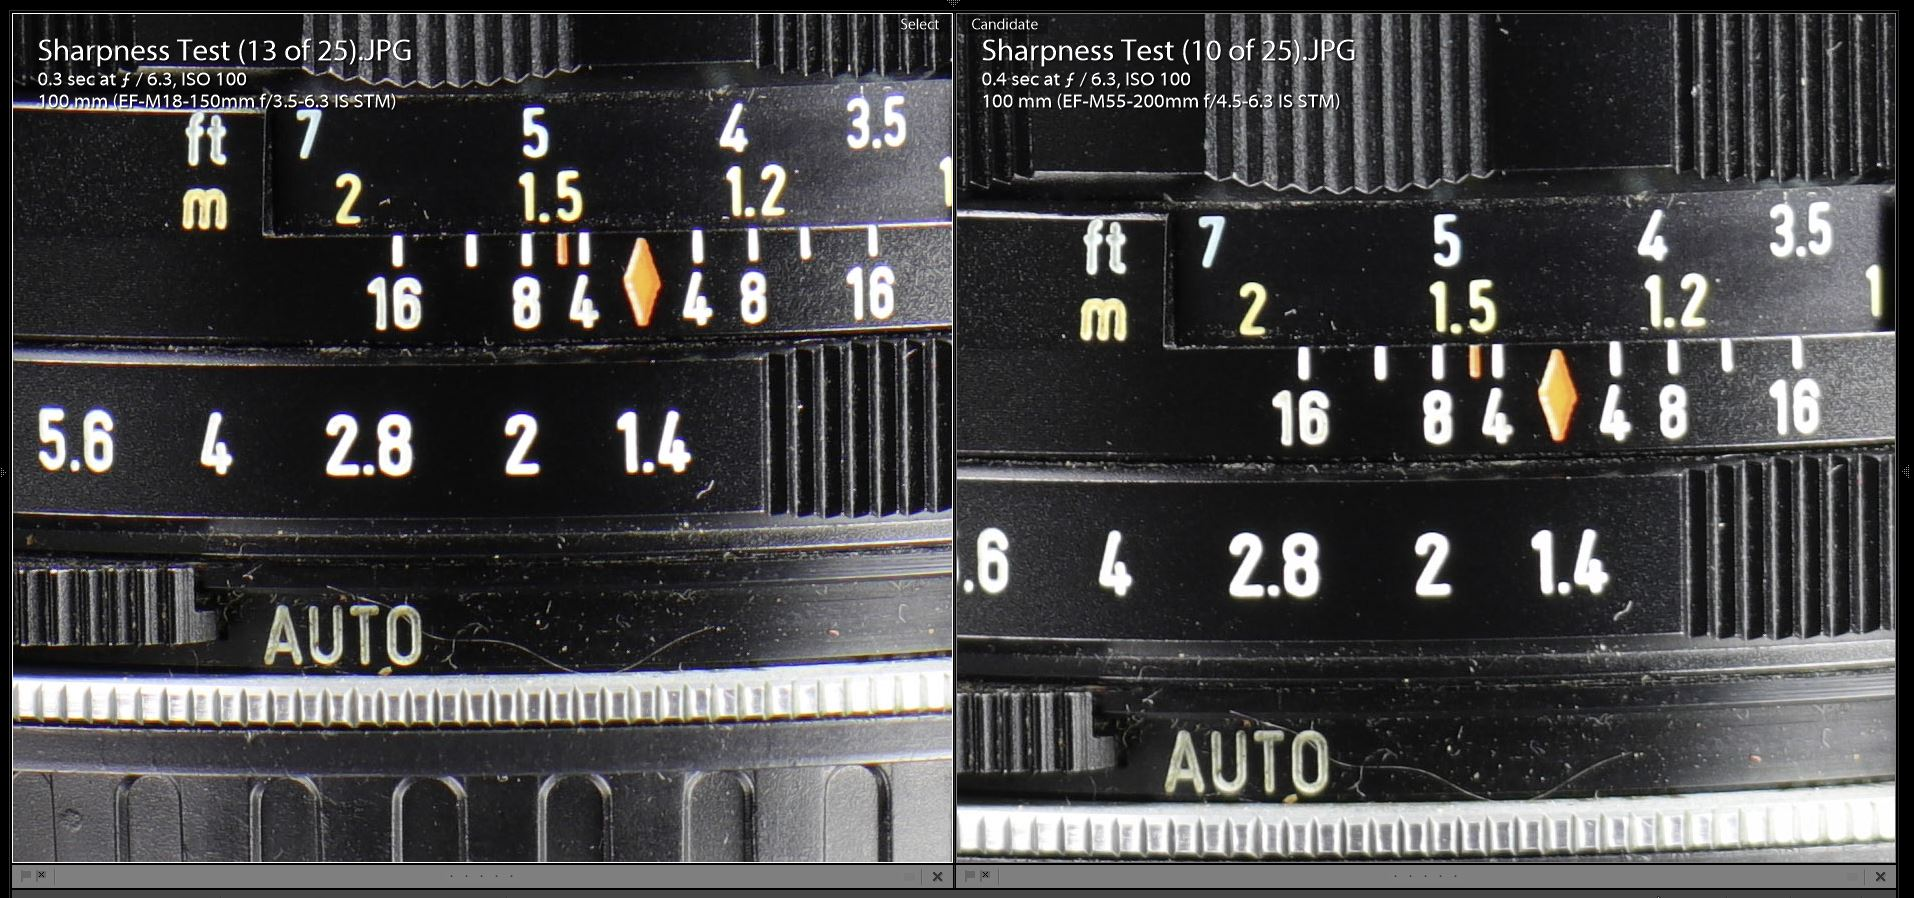 Canon Ef M 18 150mm F 35 63 Is Stm Review Eos M3 Kit Ii M18 55 Ampamp M55 200 At The Various Focal Lengths That I Compared 150 Gave Better Edge Performance While Always Nearly Matching Center